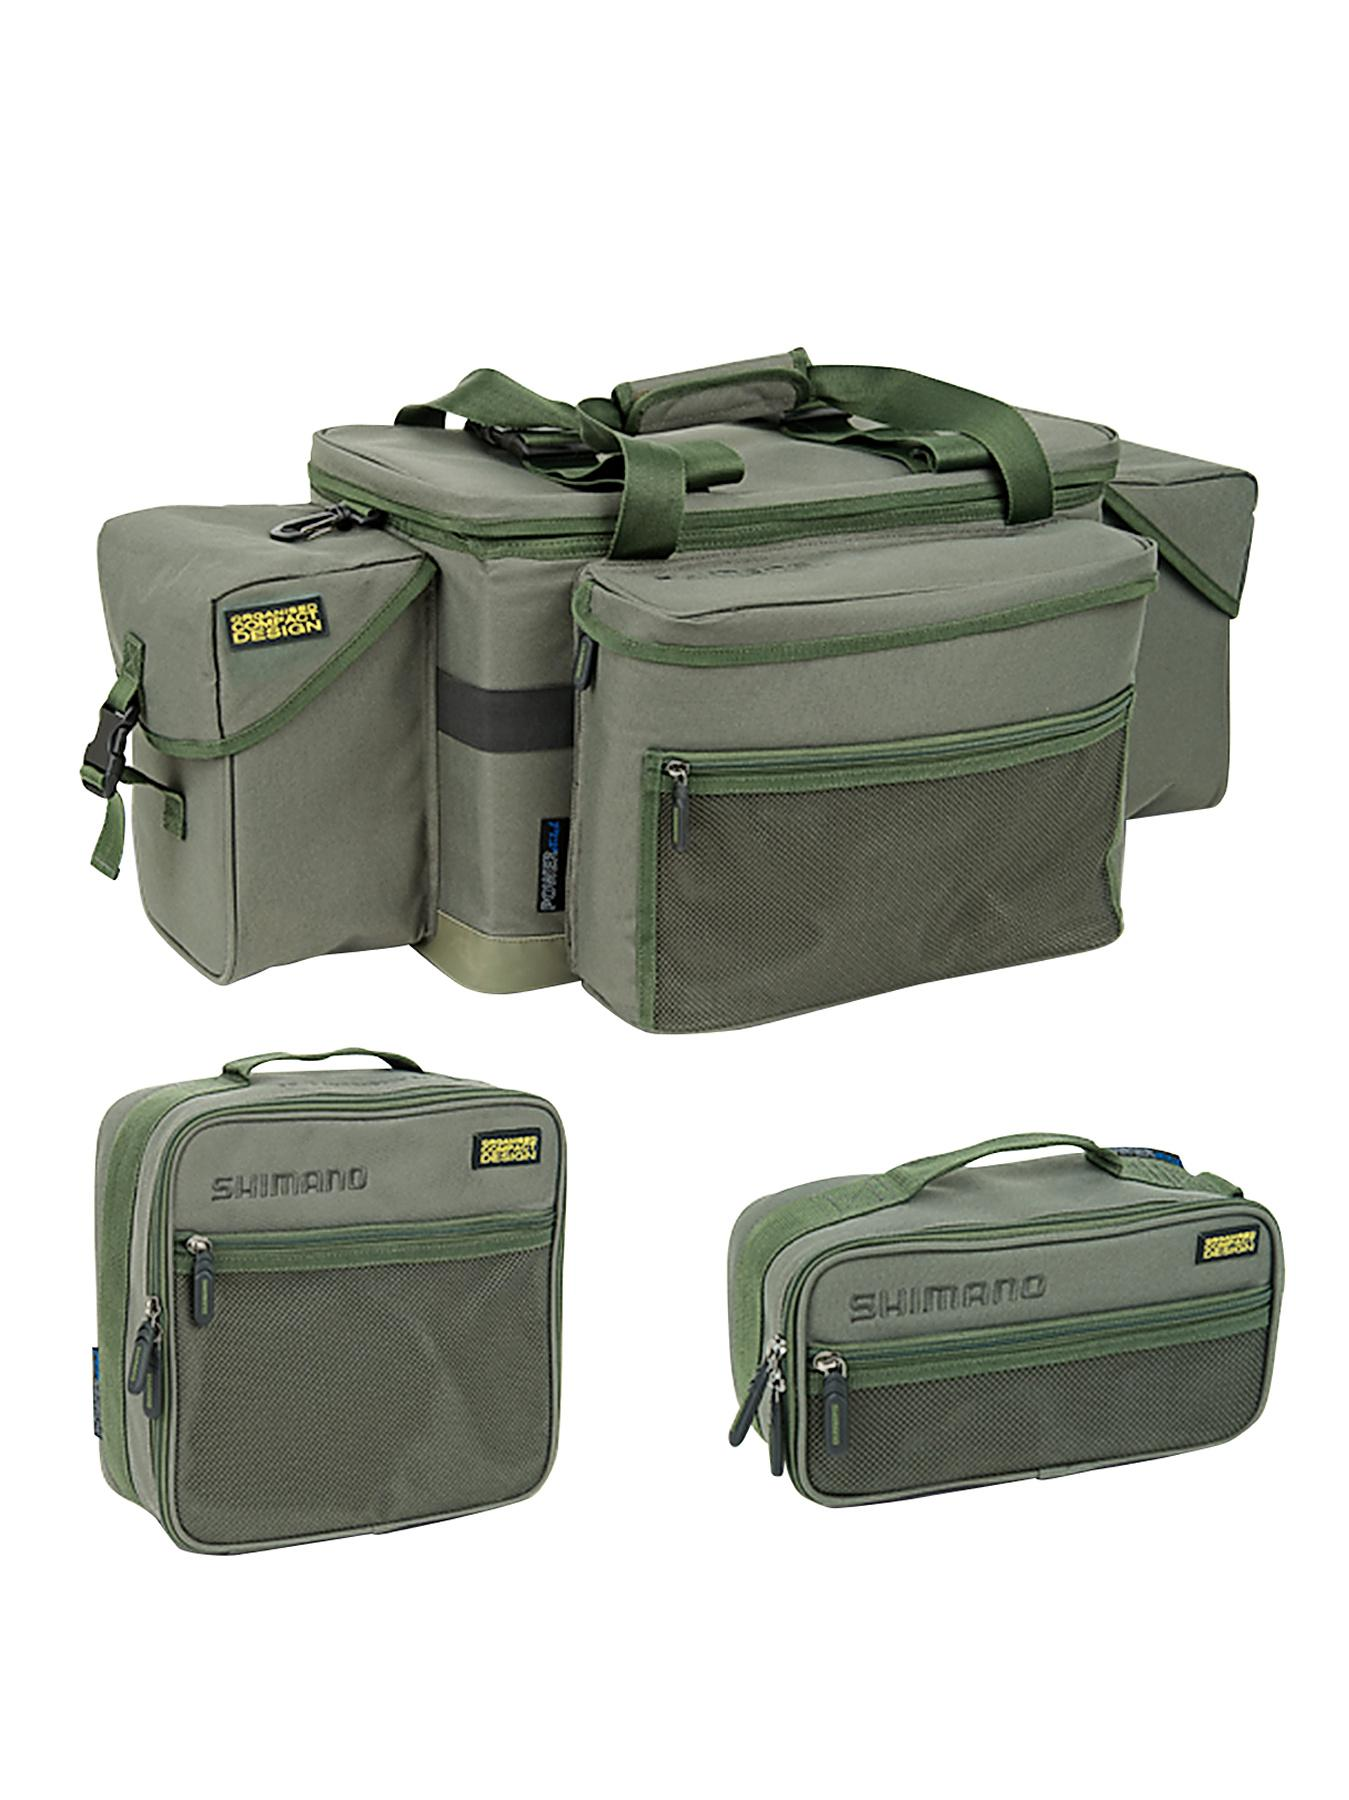 Shimano Olive Compact Loaded Carryall